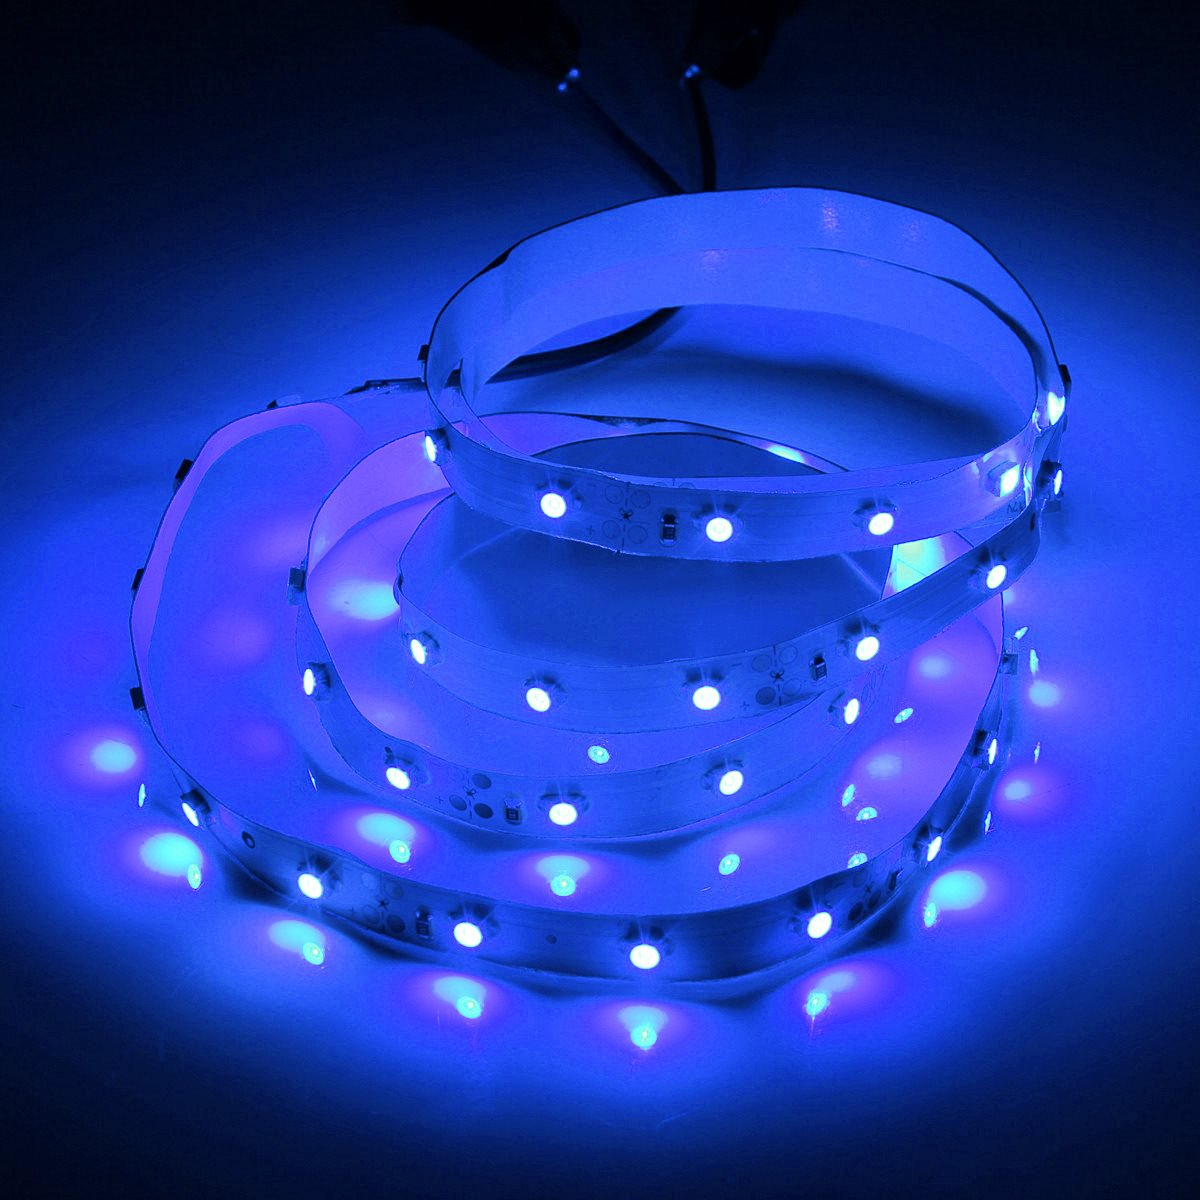 Top Quality 1M 60 LED 3528 SMD Non-Waterproof/Waterproof Flexible Strip Tape Light Lamp Home Decor 12V White/Red/Green/Blue/RGB